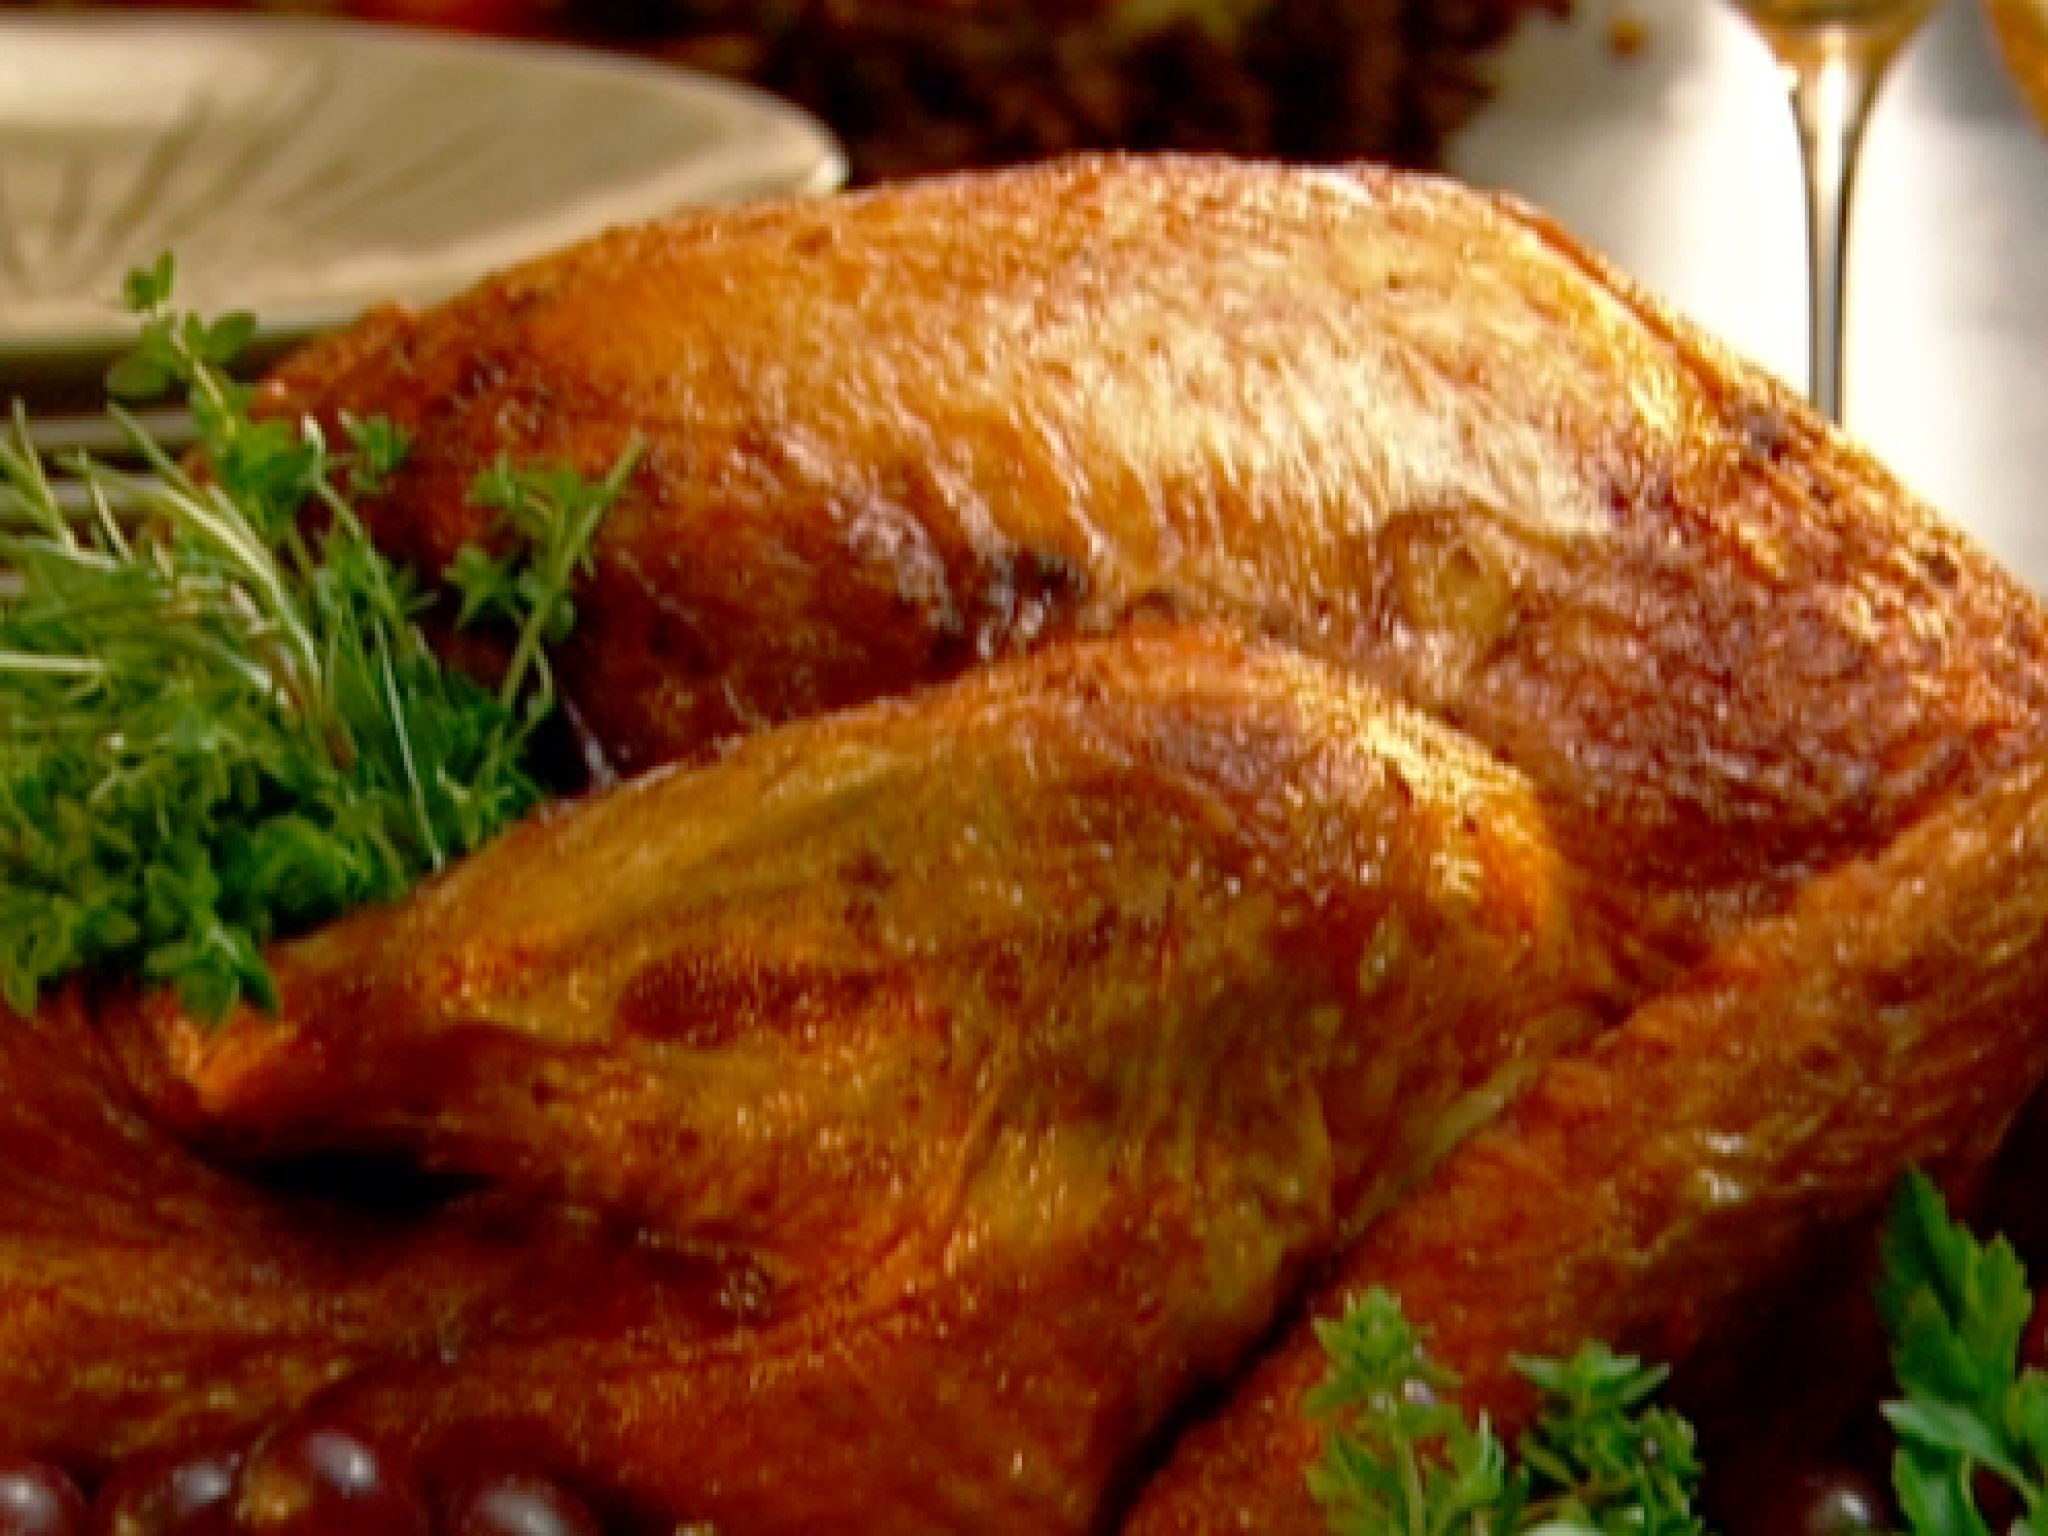 Neelys deep fried turkey recipe deep fry turkey turkey dinners neelys deep fried turkey recipe from patrick and gina neely via food network forumfinder Choice Image